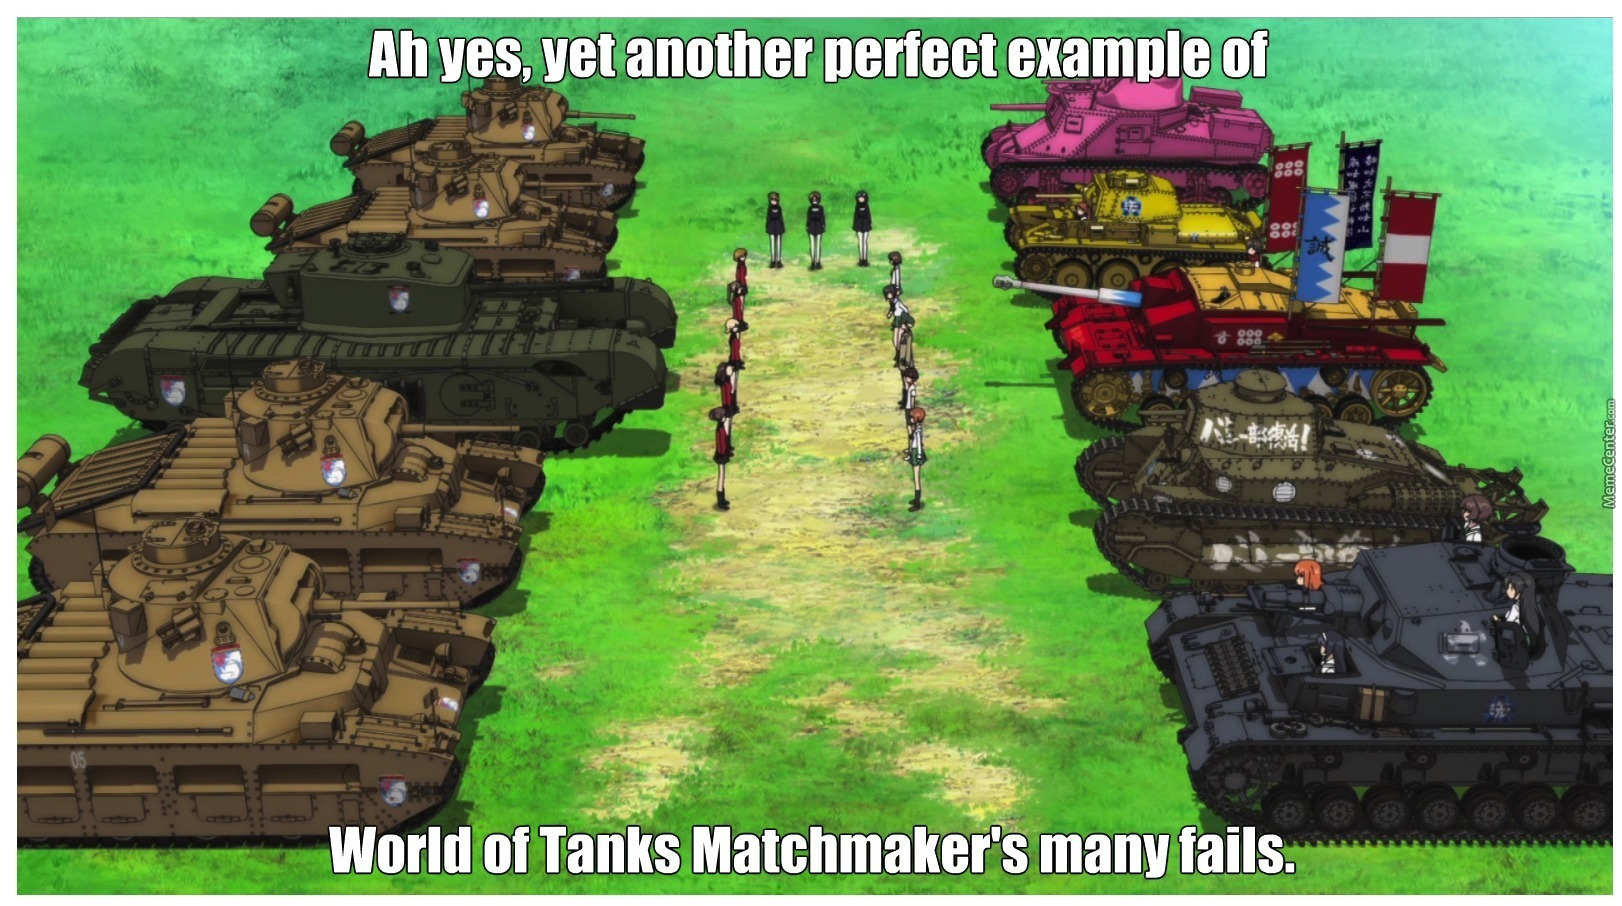 World of tanks matchmaking